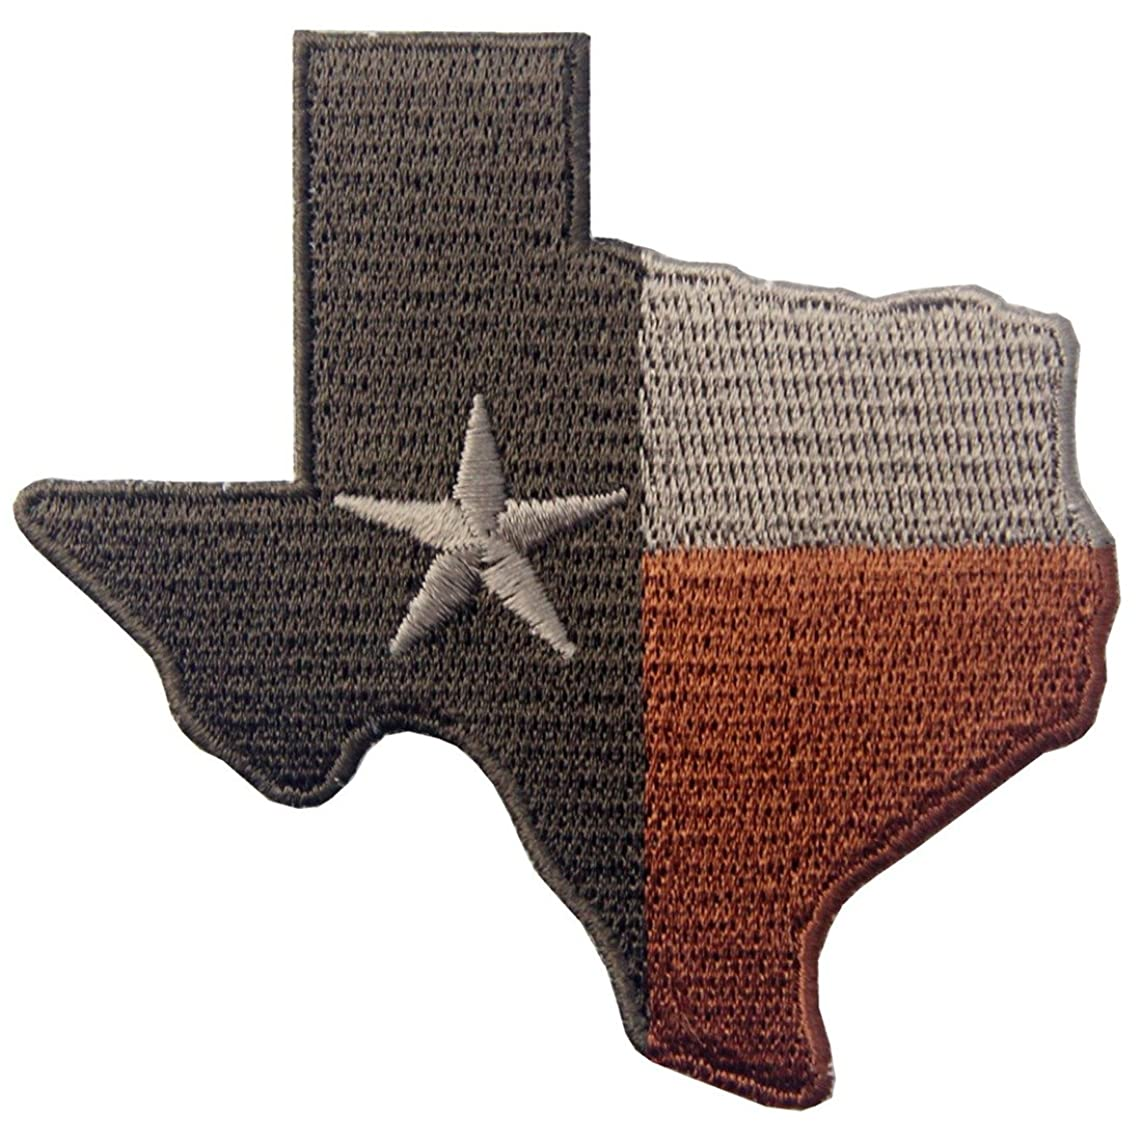 Tactical Texas State Flag Embroidered Emblem Iron On Sew On TX Patch - Subdued Red